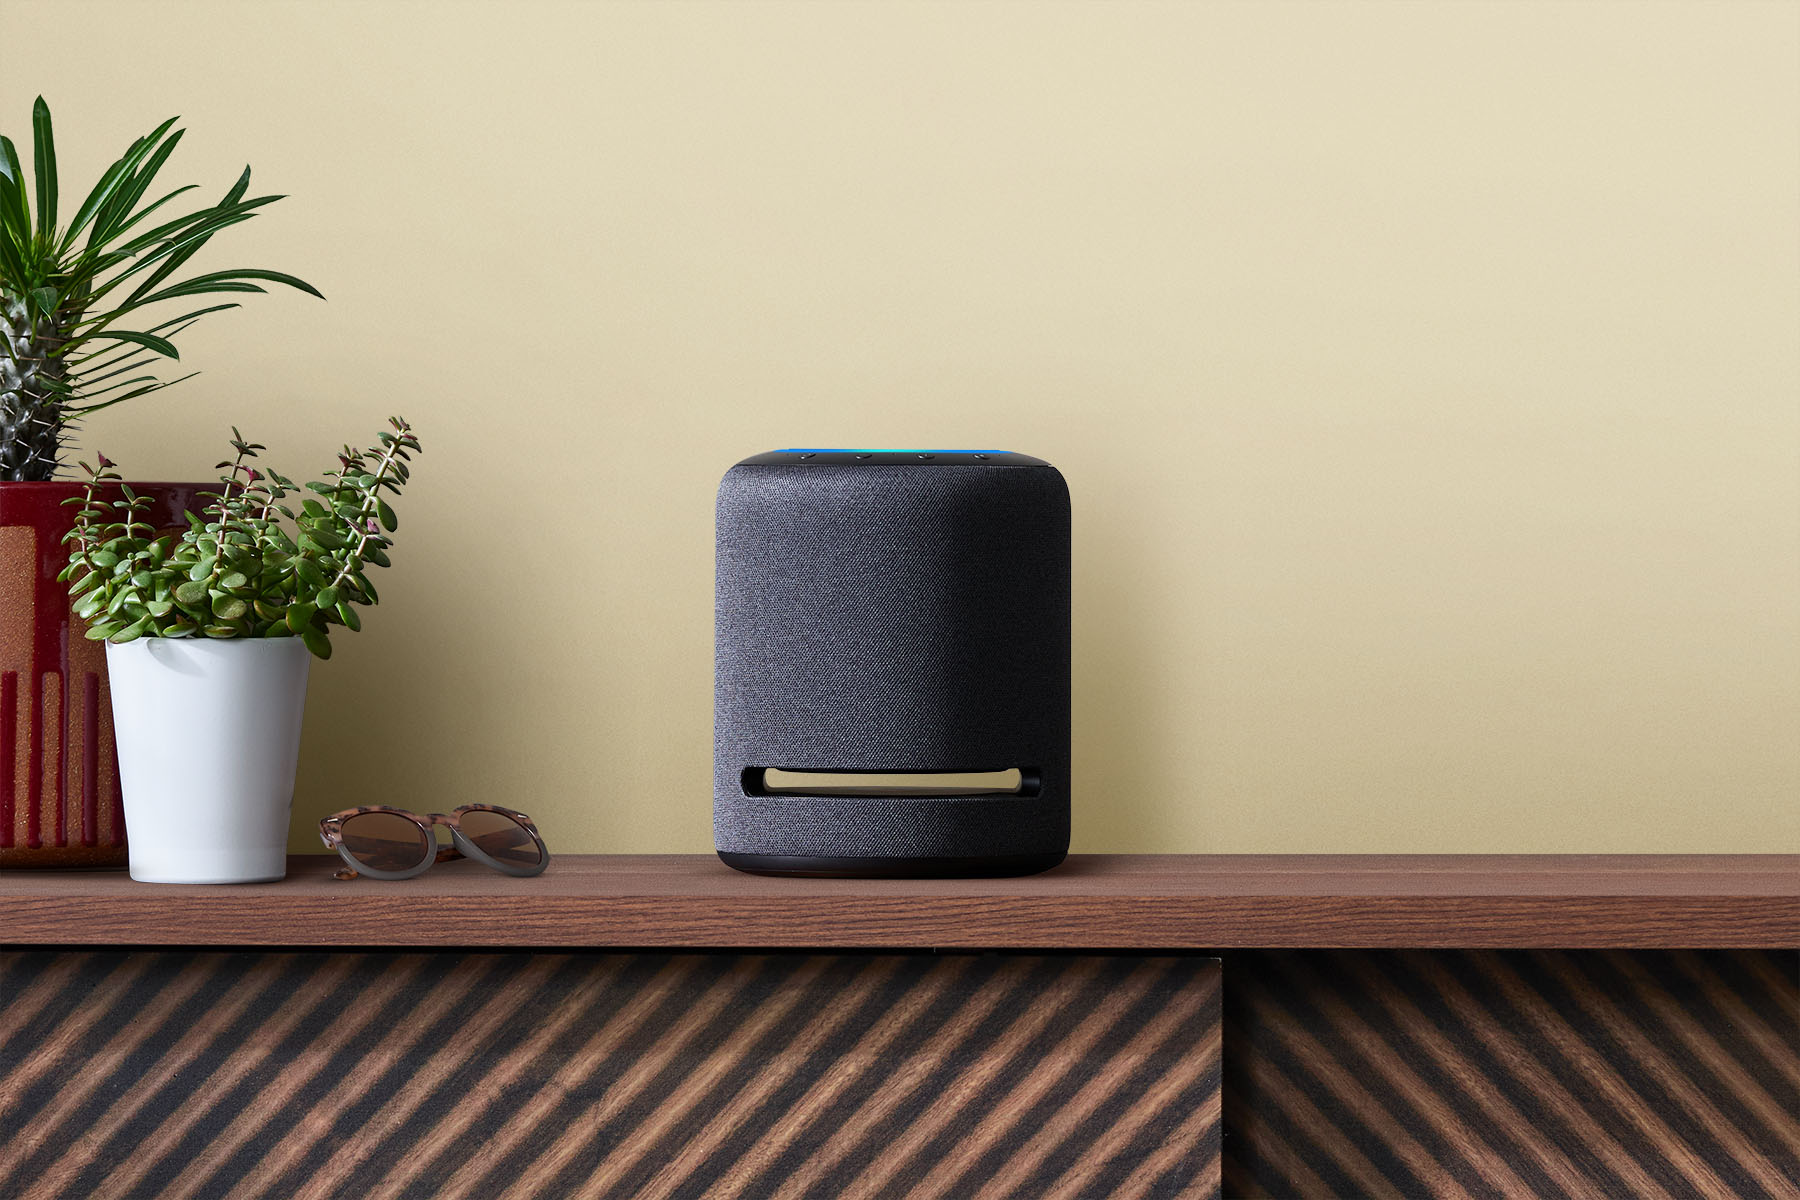 Amazon's new Echo Studio promises high-end sound with Dolby Atmos chops